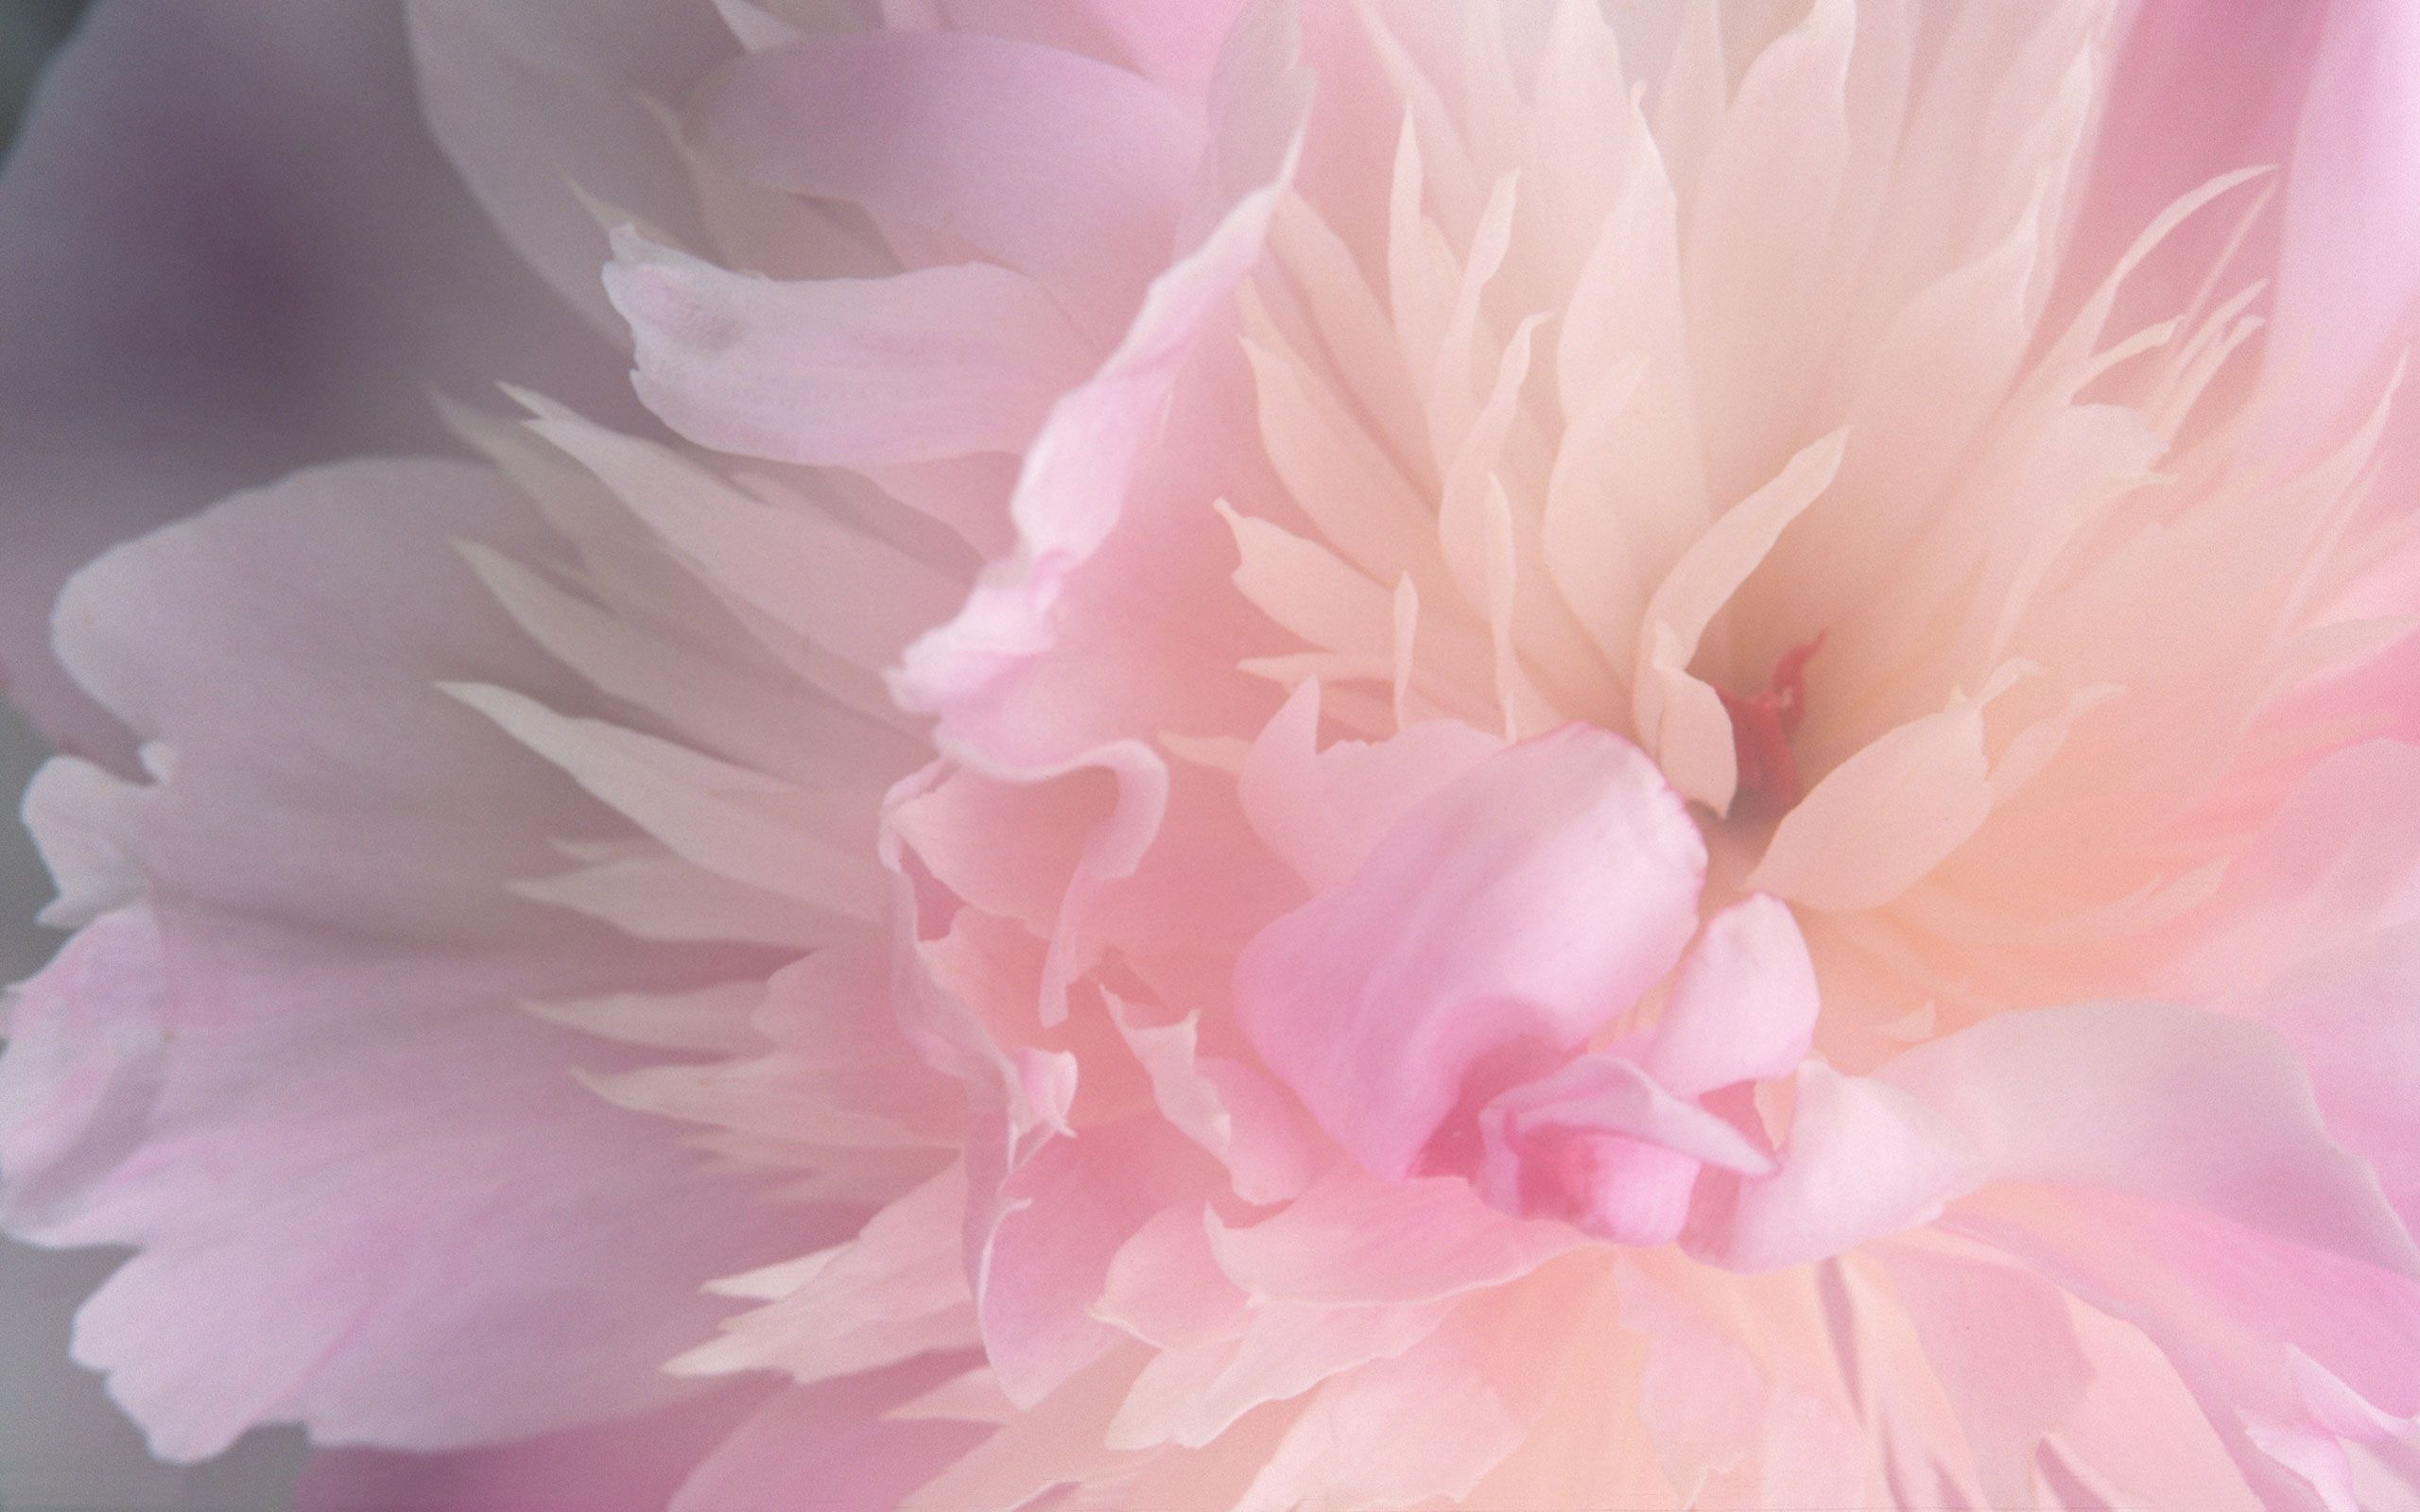 2560x1600 peonies background wallpaper - Google Search | Flowers | Pink ...